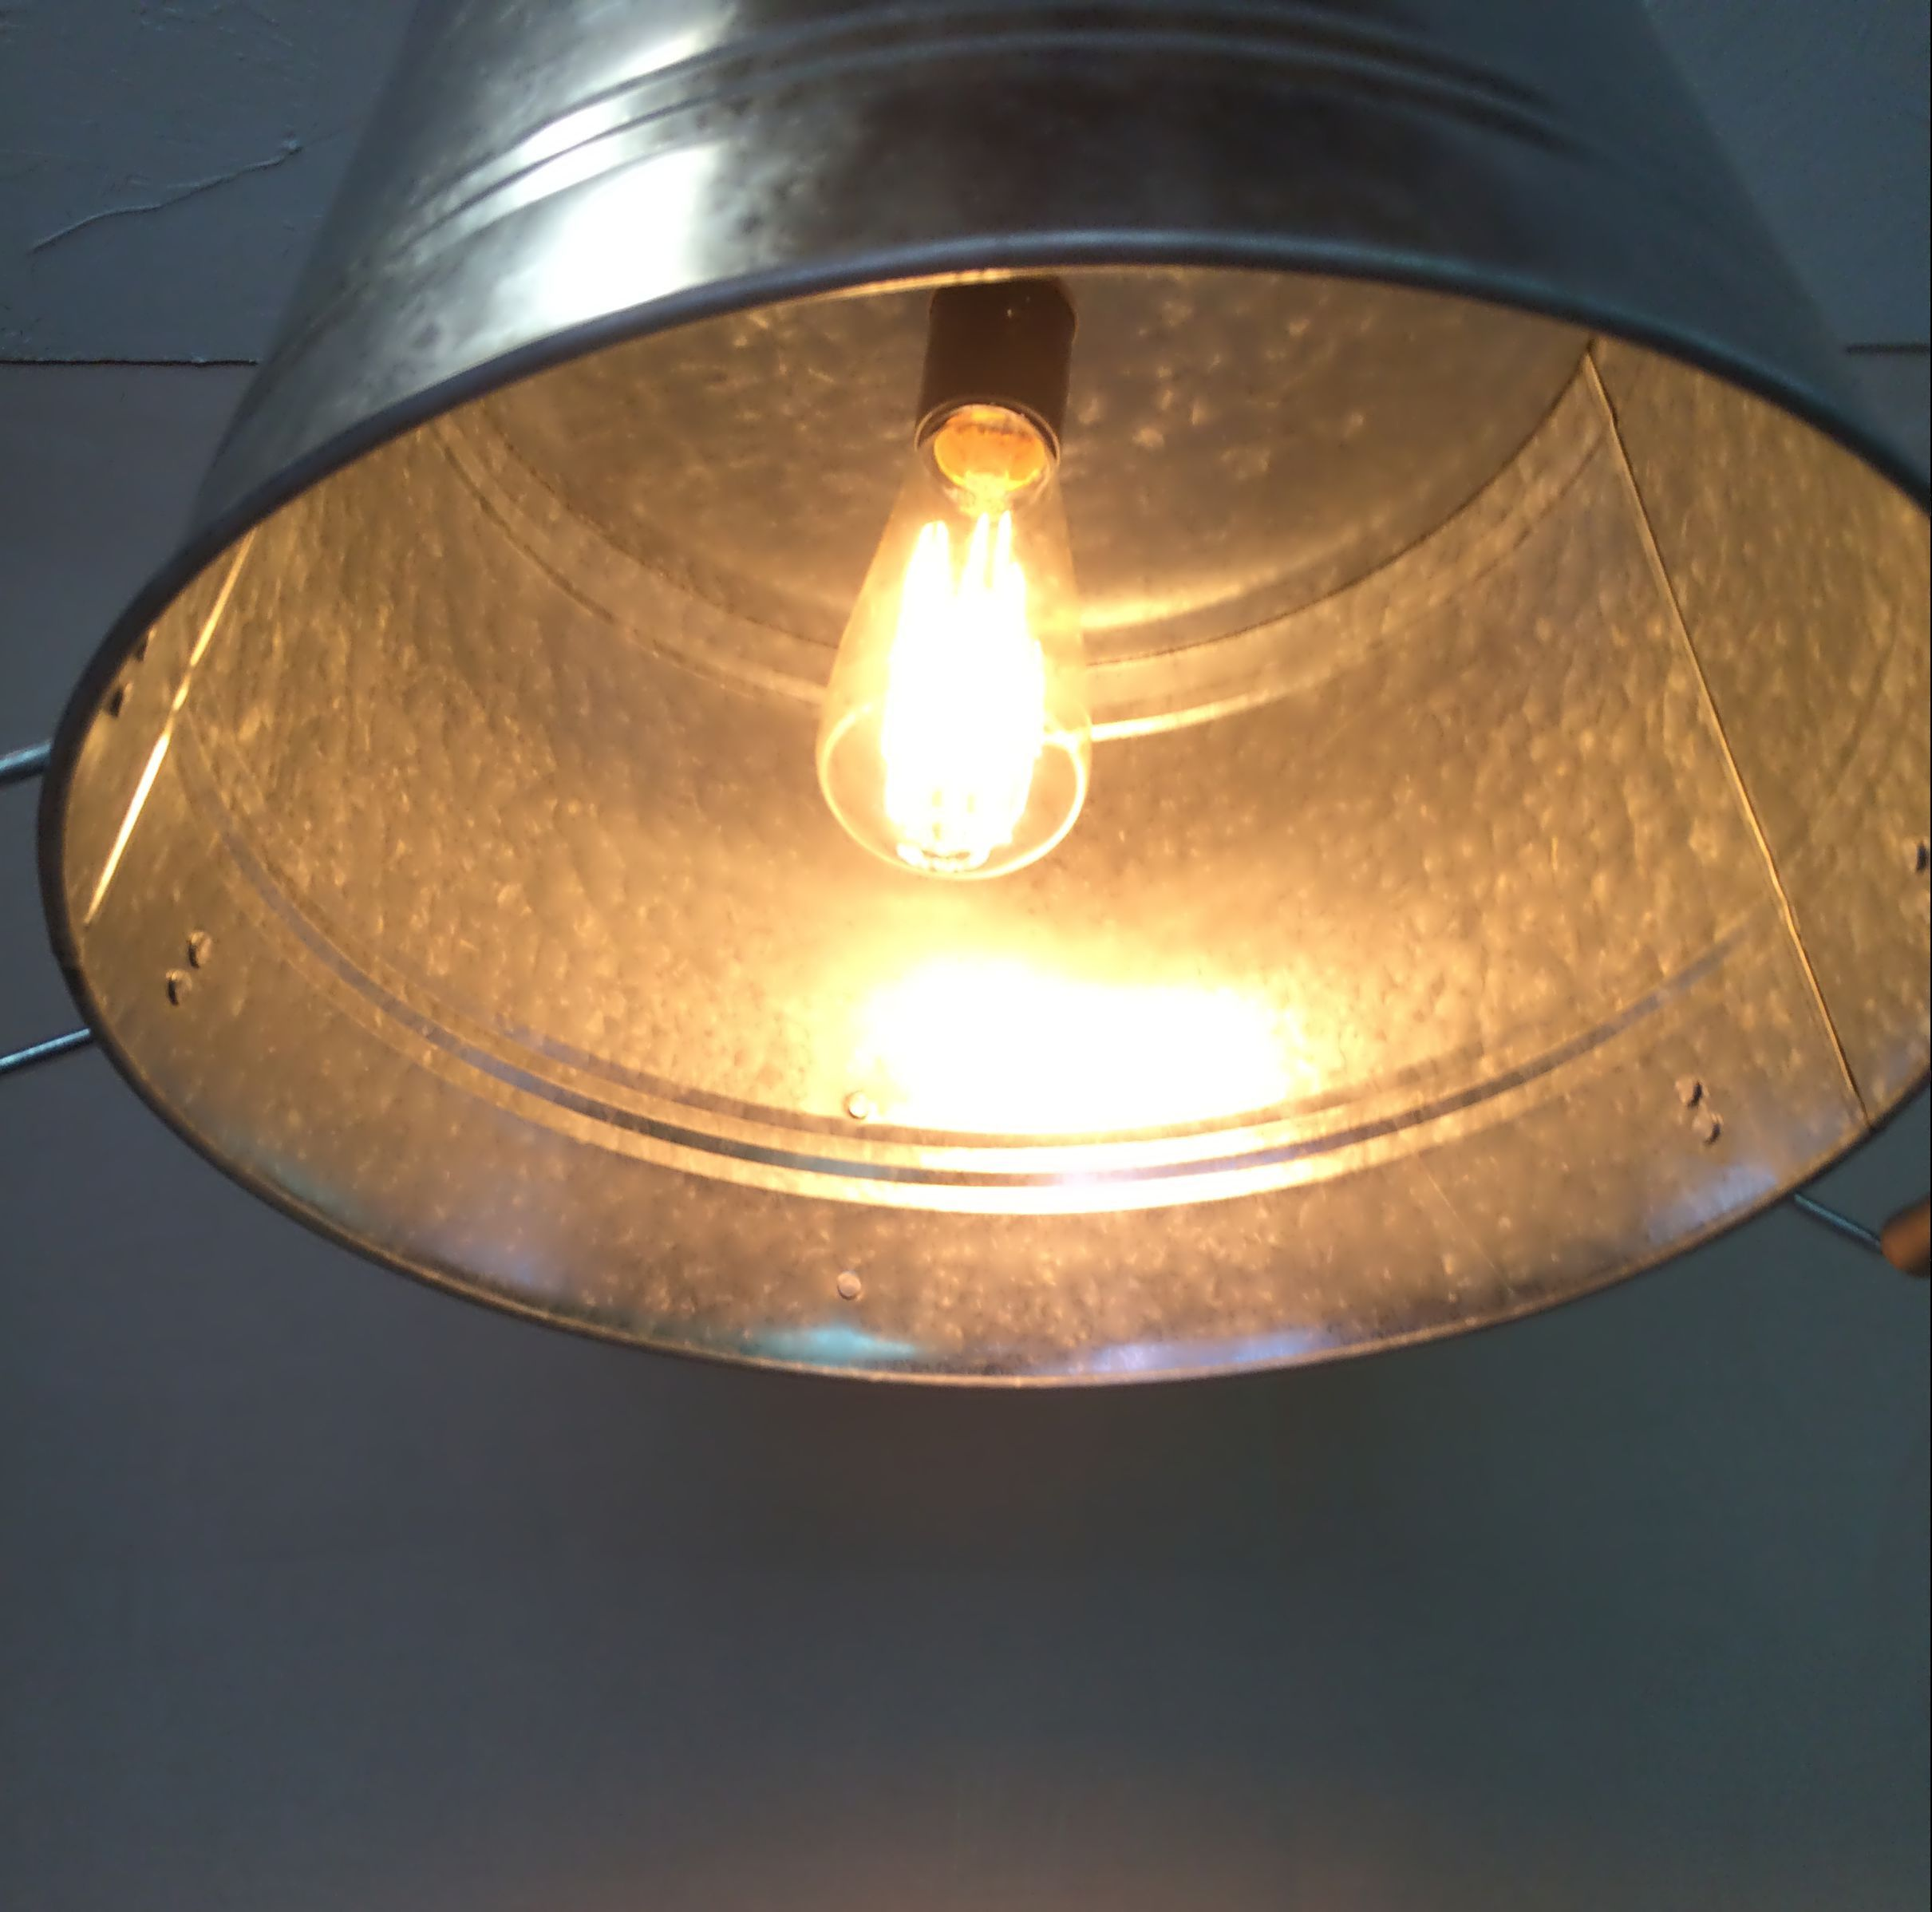 Buy A Hand Made Galvanized Pail Tub Bucket Pendant Light